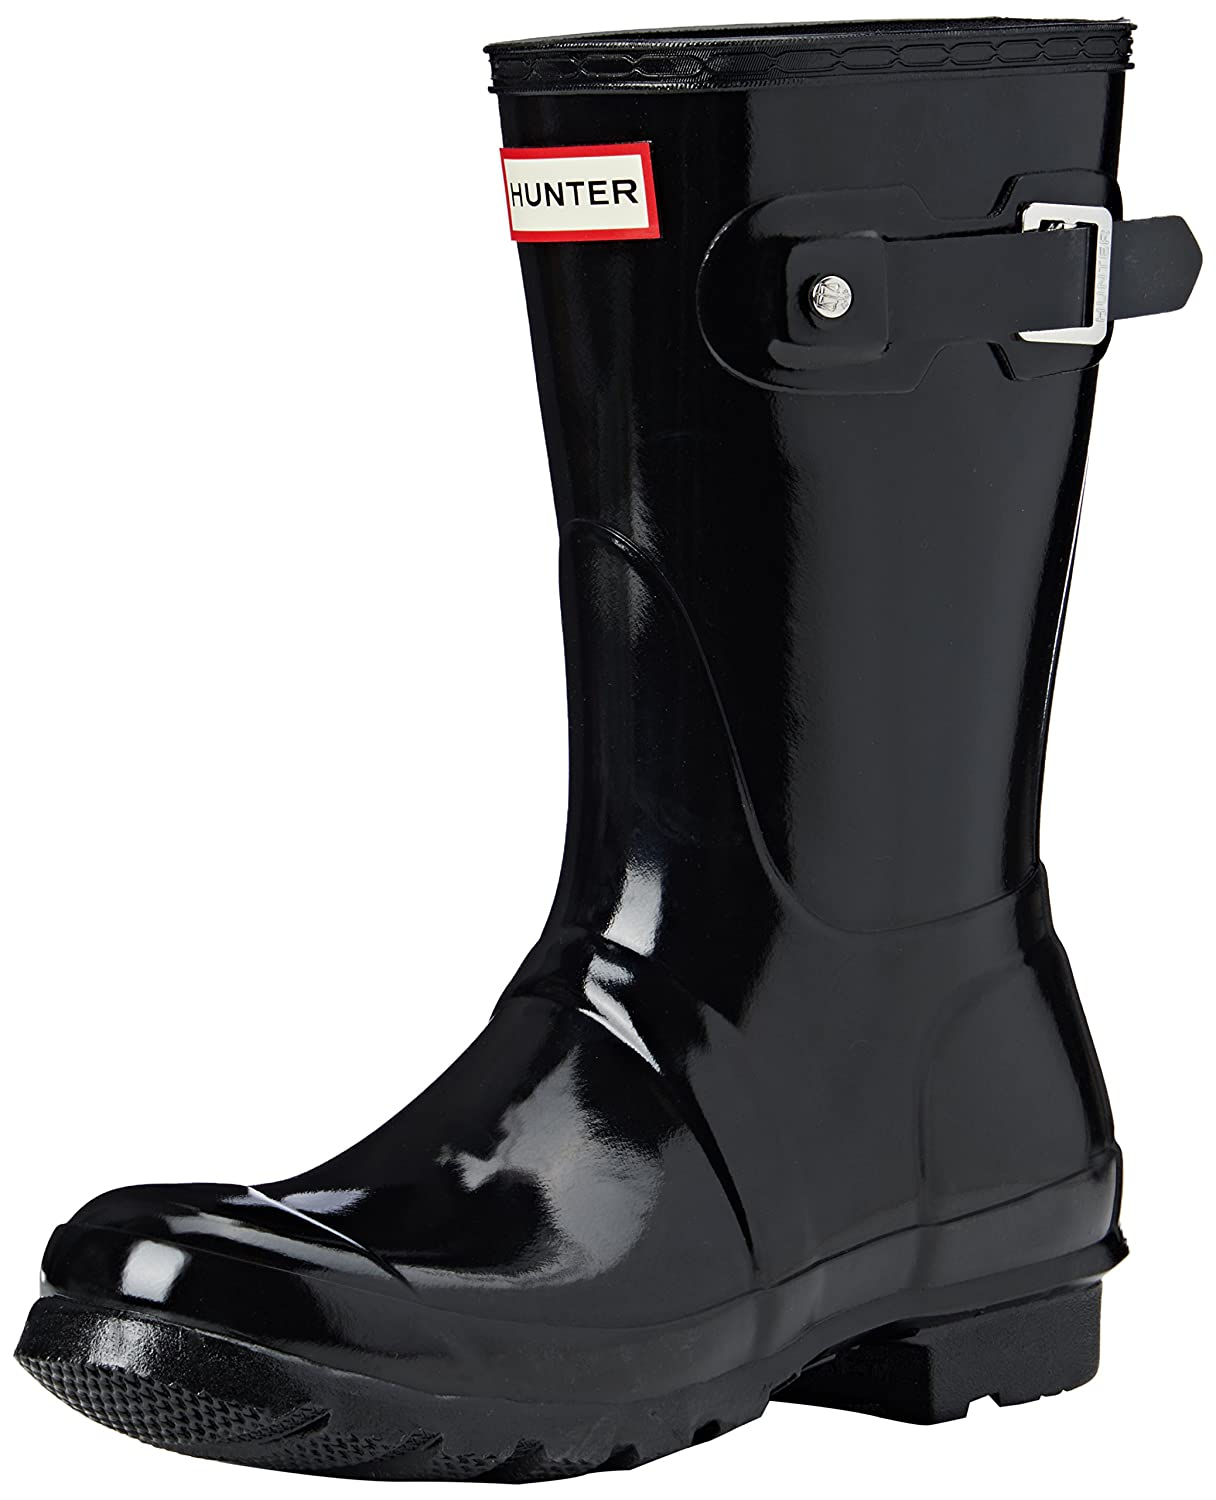 Hunter Women's Original Short Gloss Rain Boots B00K1WC8KW 10 B(M) US|Black